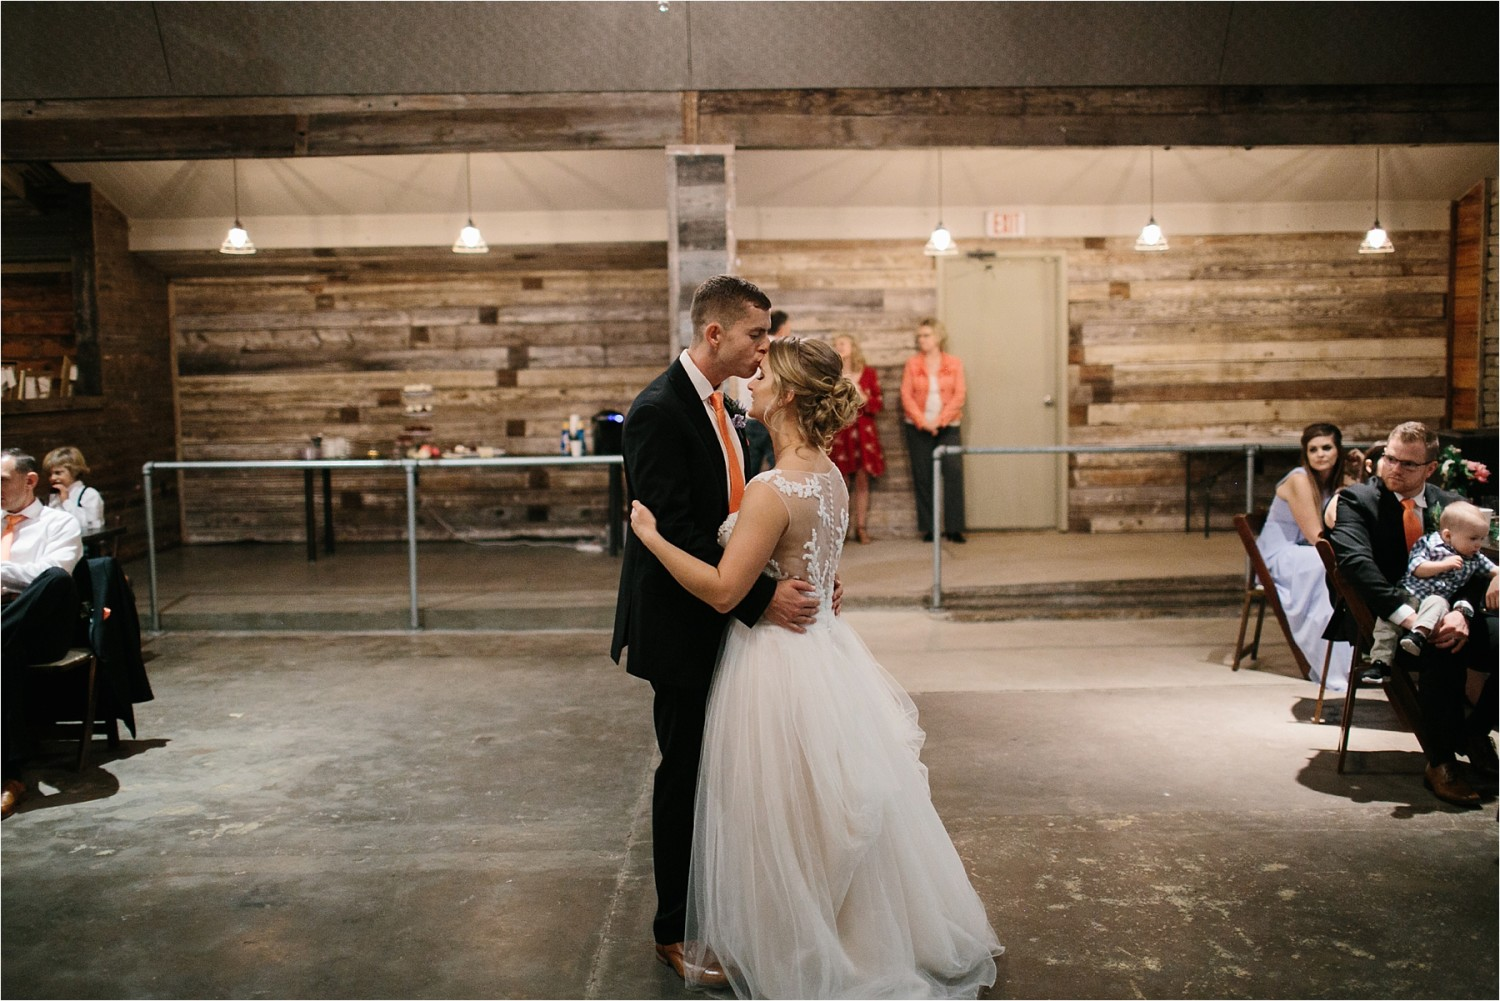 a-riffle-paper-co-inspired-color-pallete-wedding-at-mopac-event-center-in-fort-worth-tx-by-north-texas-wedding-photographer-rachel-meagan-photography-_-077